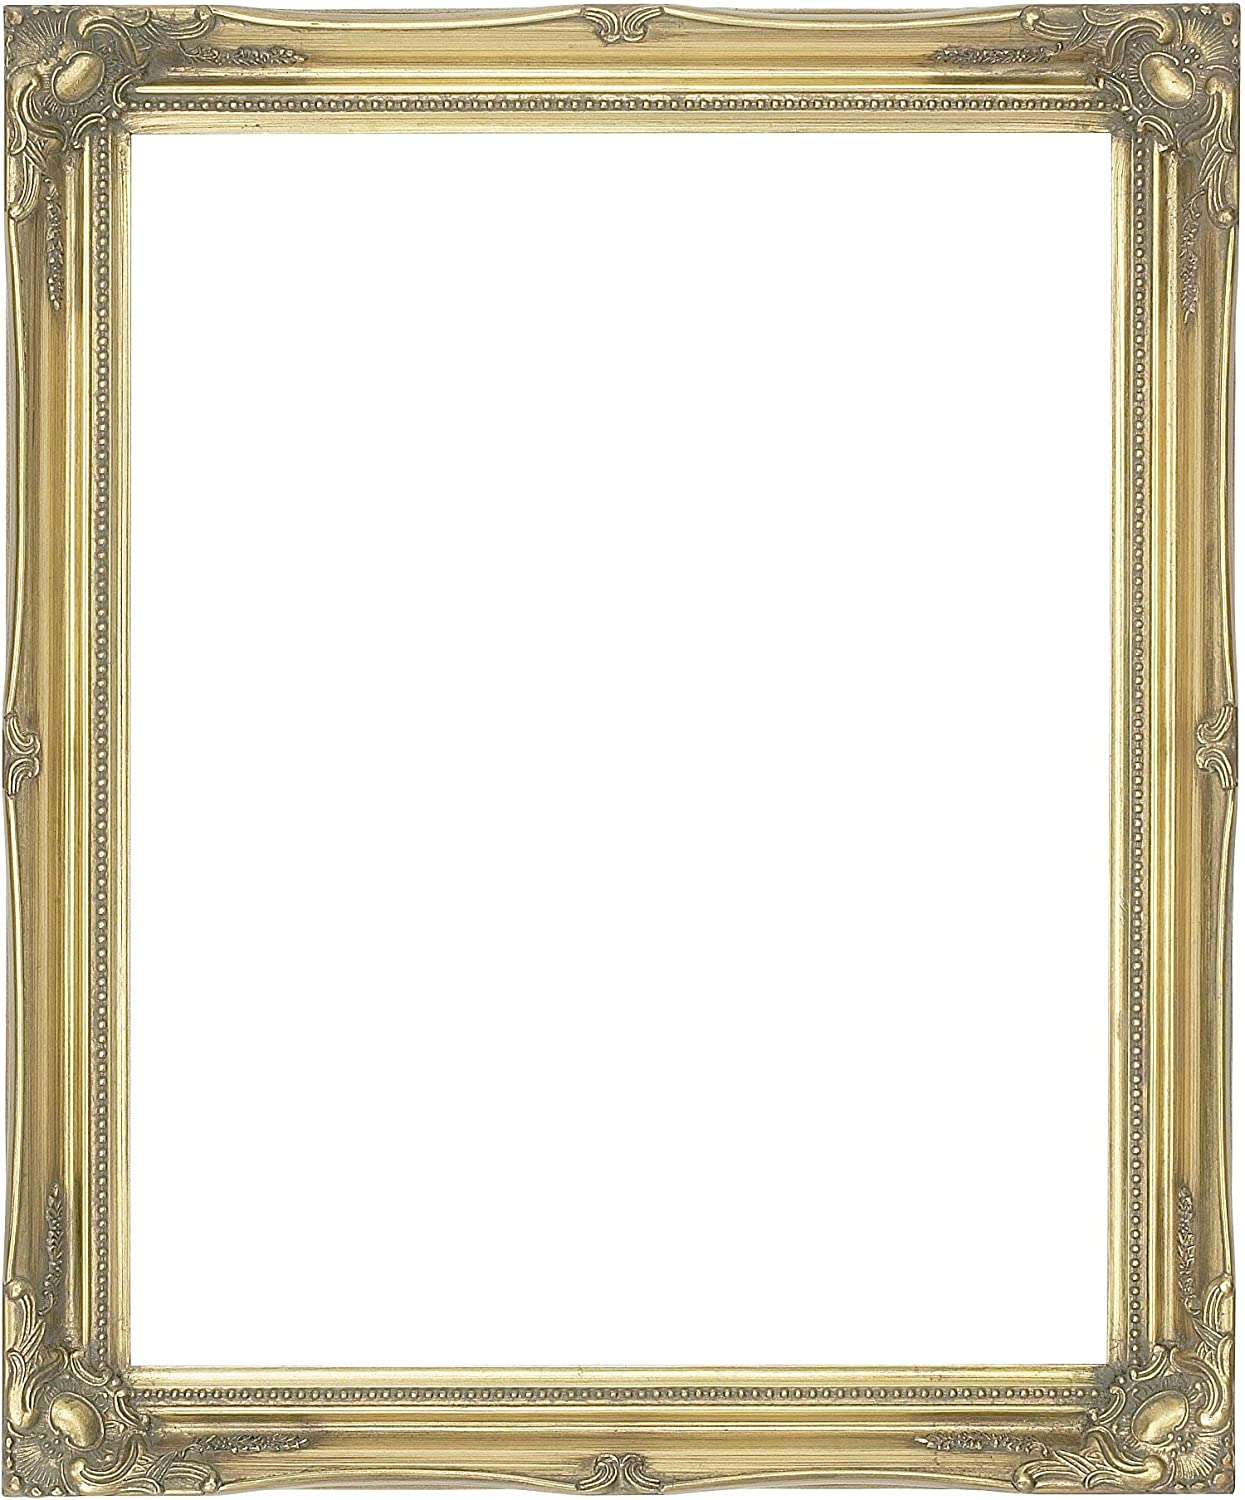 Antique Gold Shabby Chic Style Rectangular Wall Mirror Complete With Premium Quality Pilkington S Glass Size 28 Inches X 24 Inches 70cm X 60cm Amazon Co Uk Kitchen Home